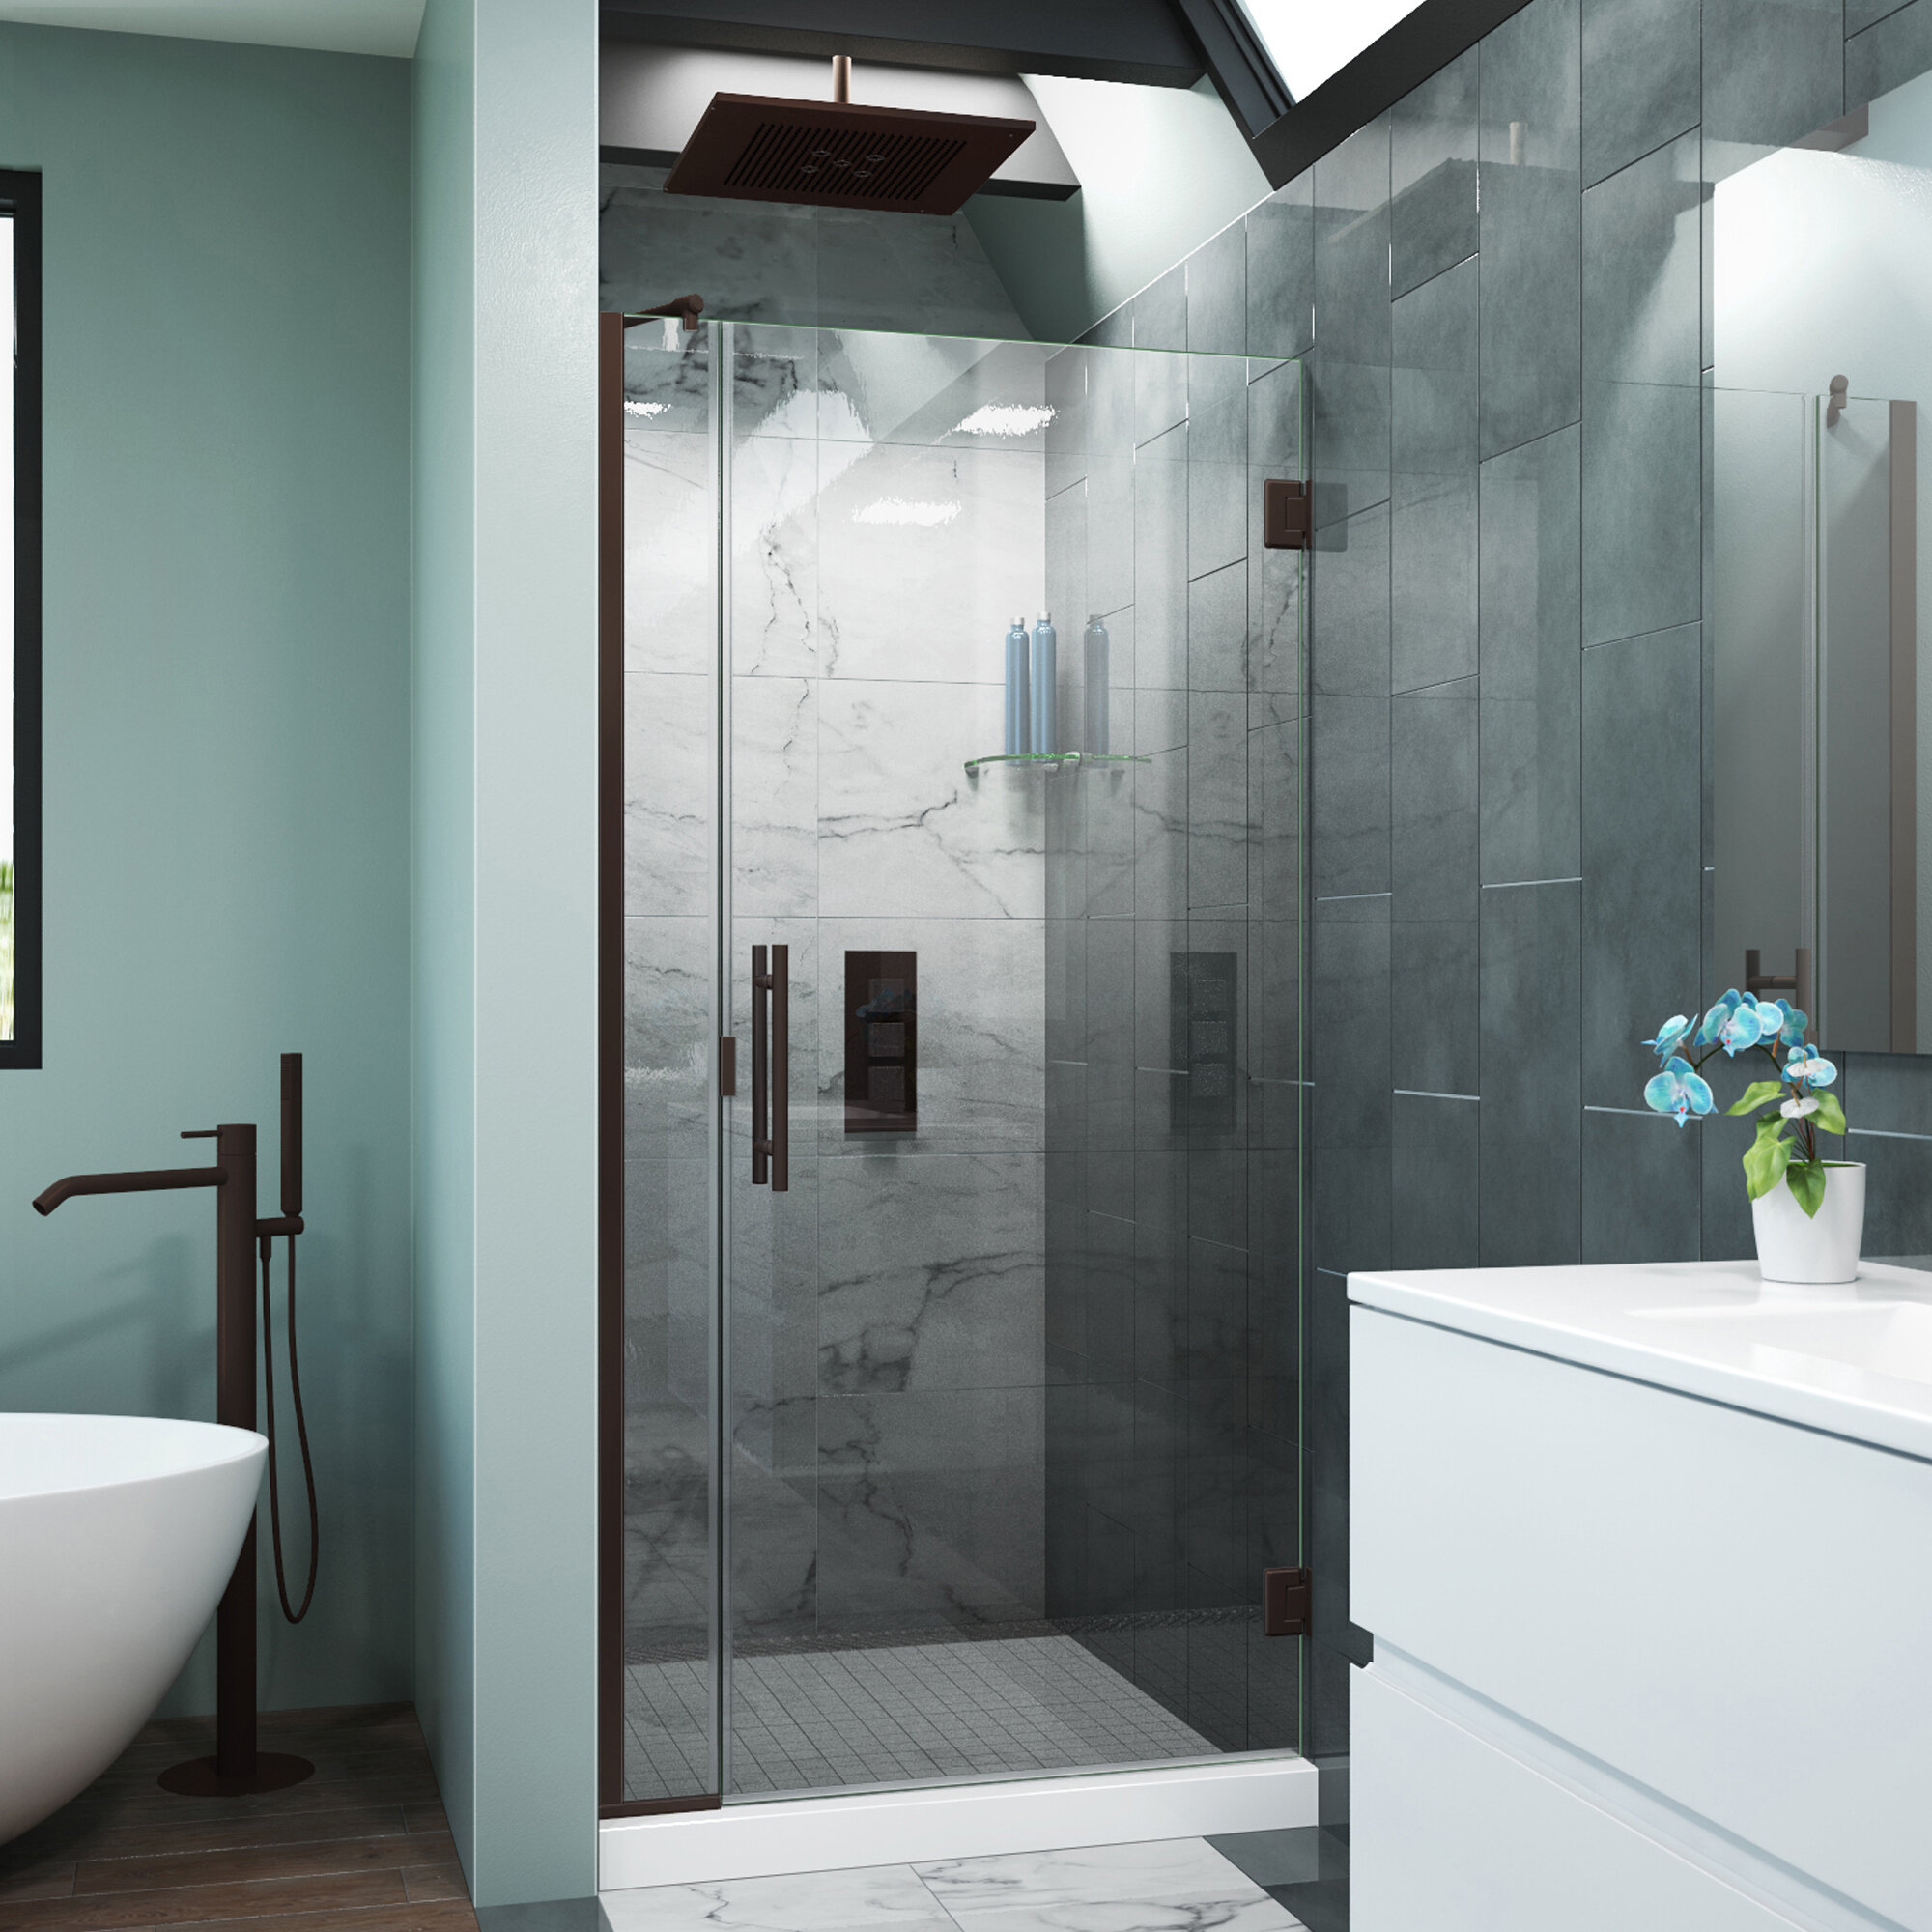 Arizona Shower Door Scottsdale 34 X 72 Hinged Frameless Shower Door With Invisible Shield By Clean X Wayfair